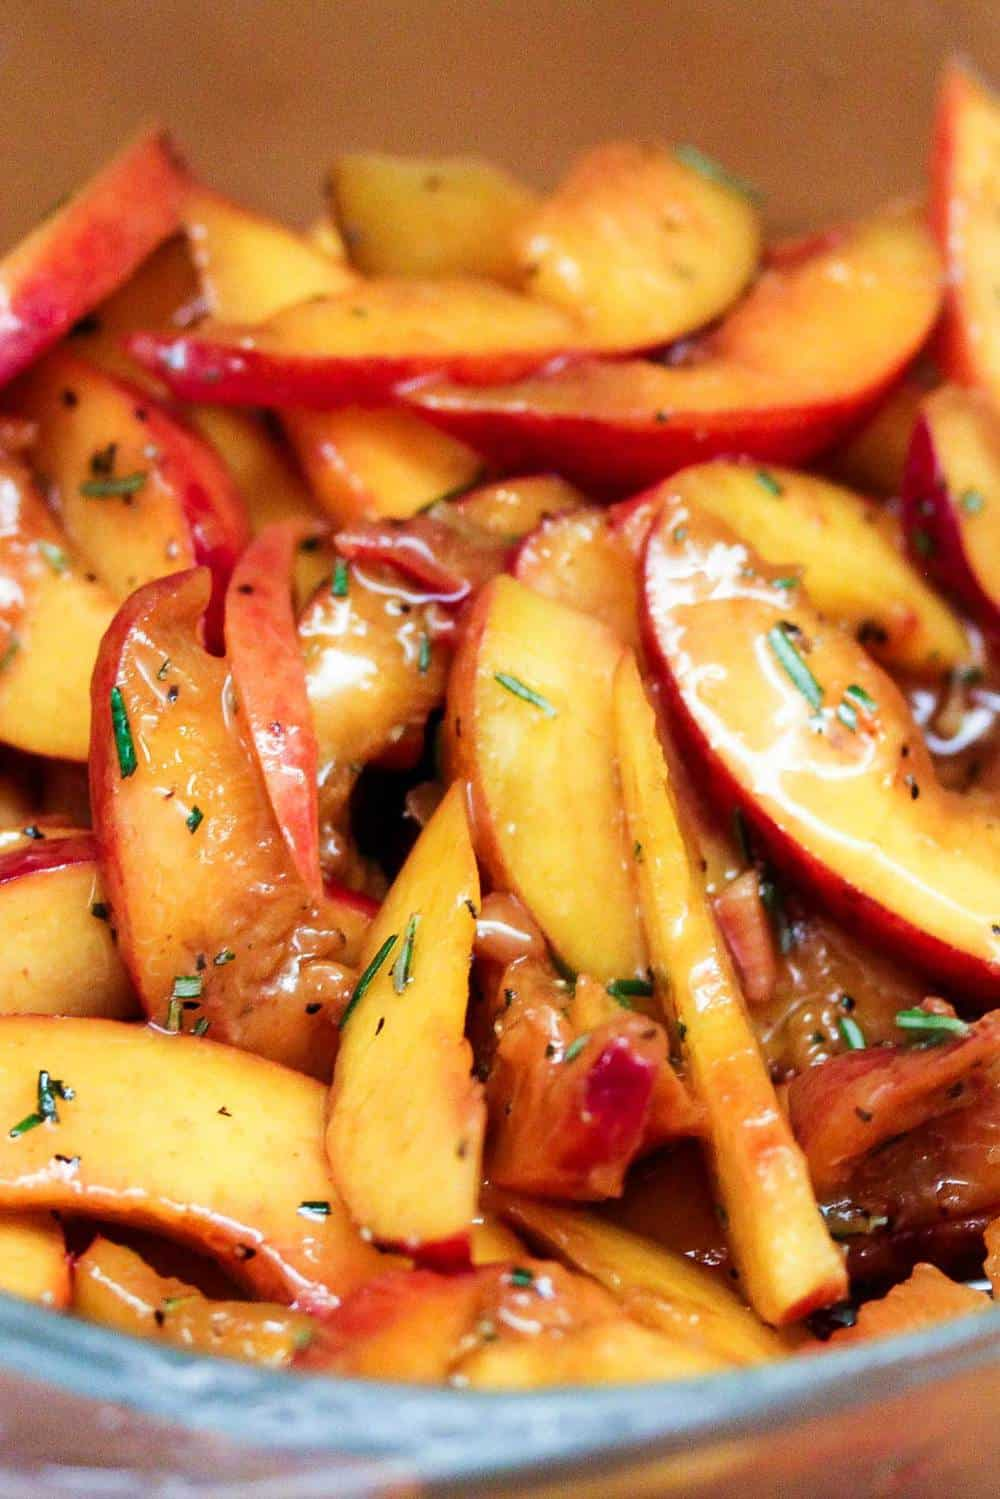 Peaches in a pot marinating for braised chicken and savory peaches.